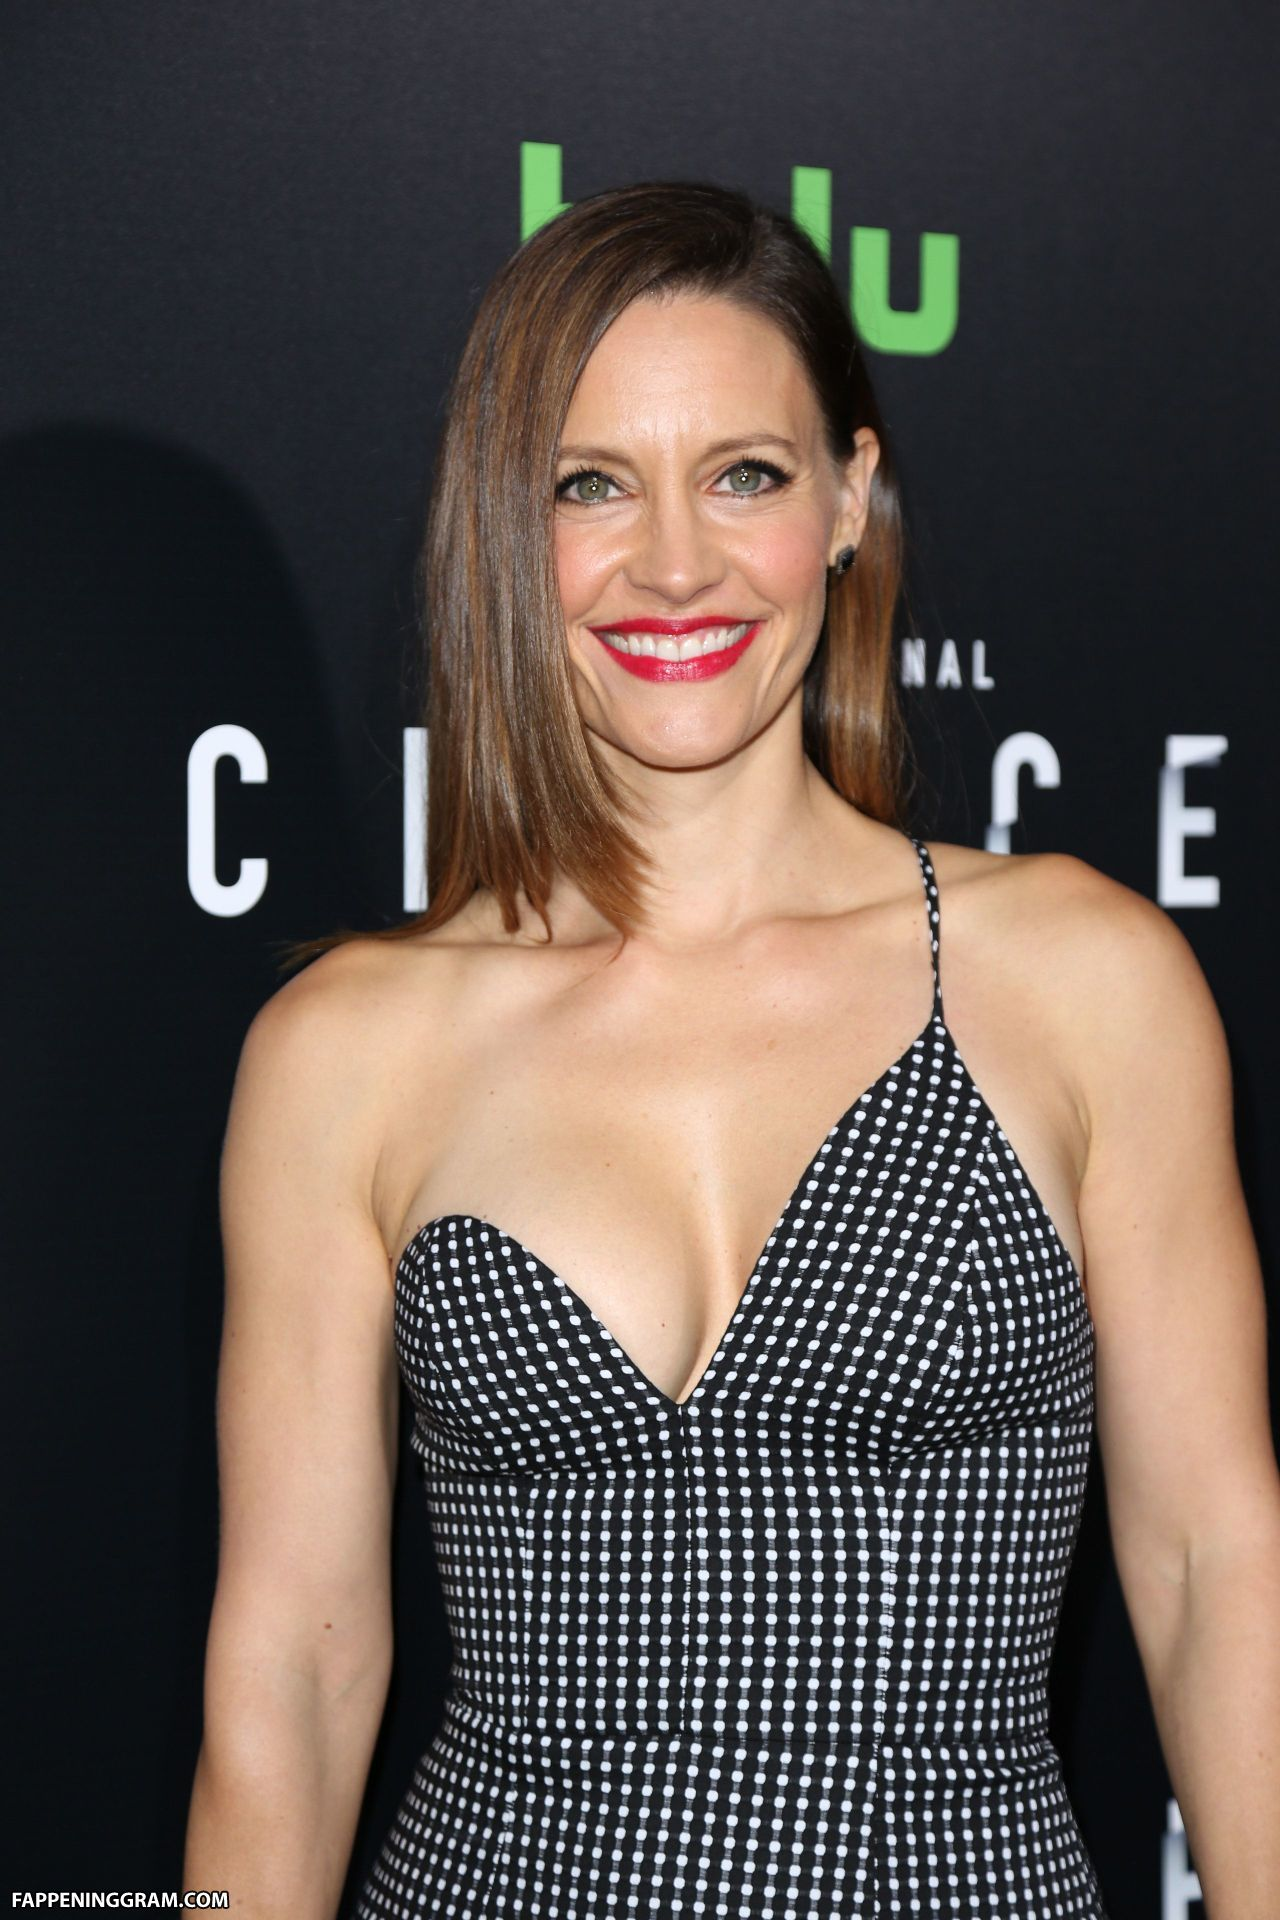 KaDee Strickland Nude The Fappening - Page 2 - FappeningGram